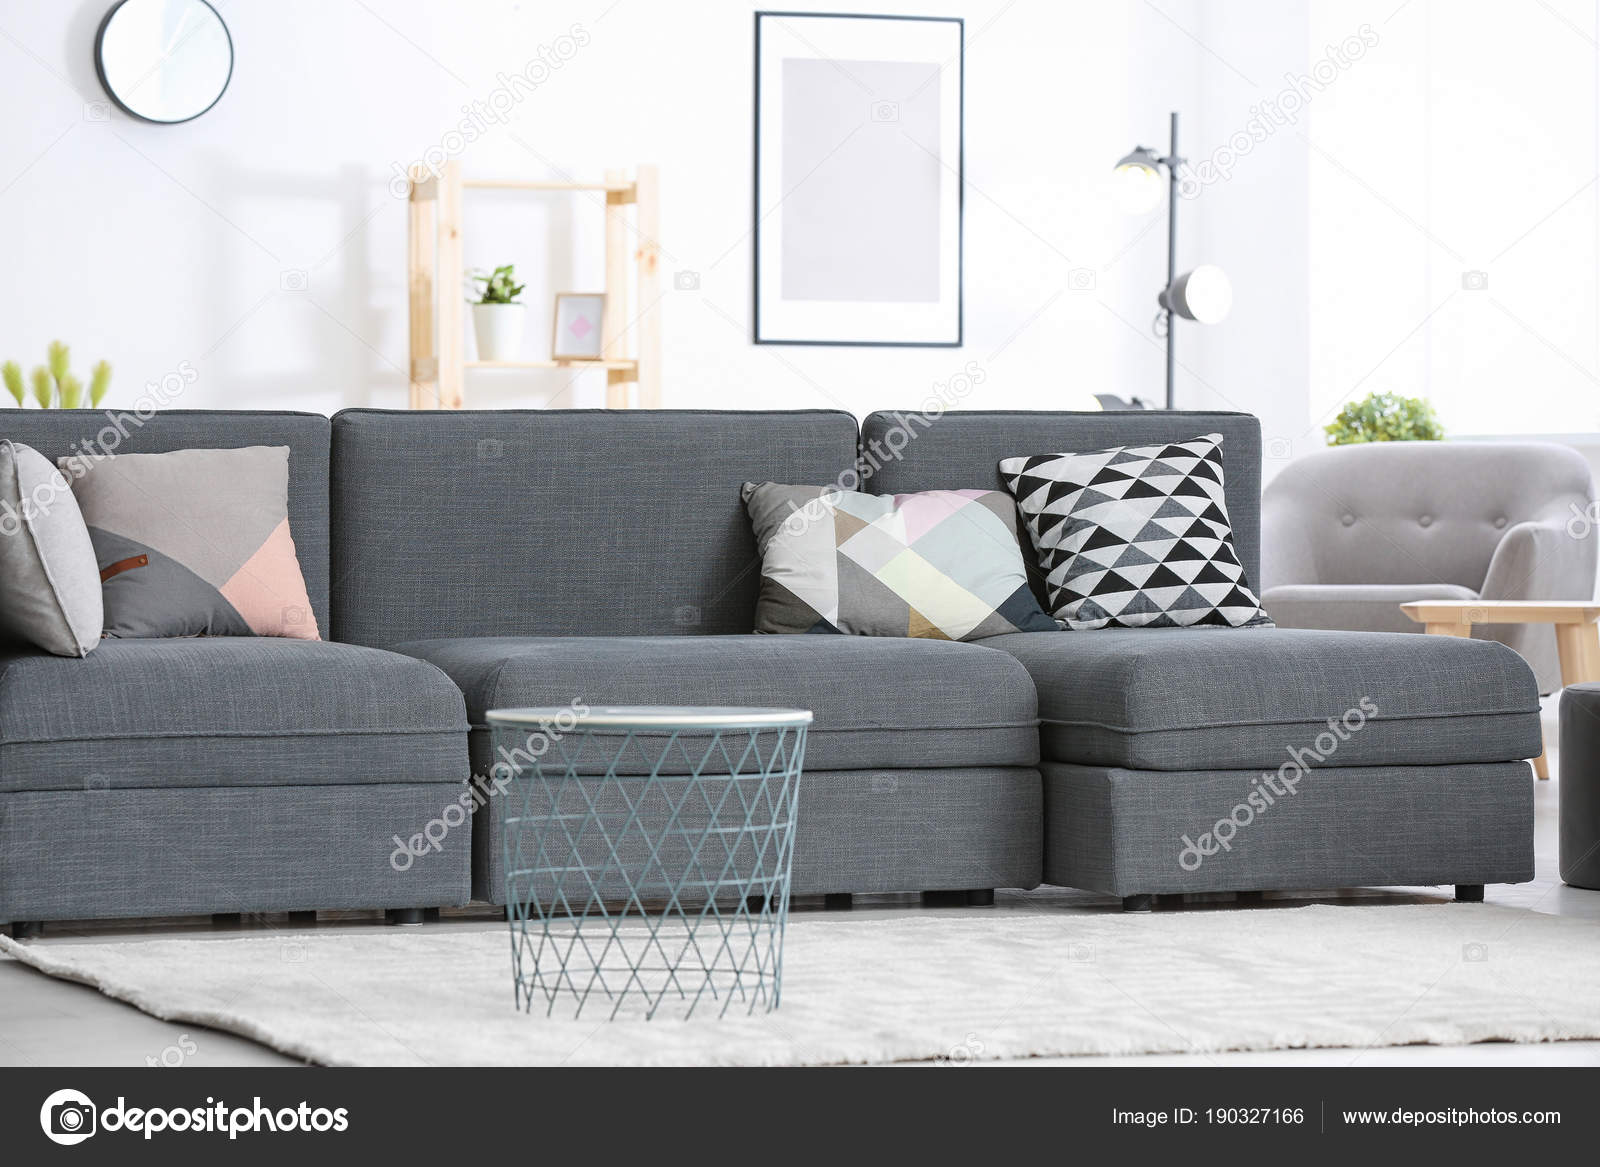 Design Kussens Bank.Modern Grey Sofa Different Pillows Living Room Stock Photo